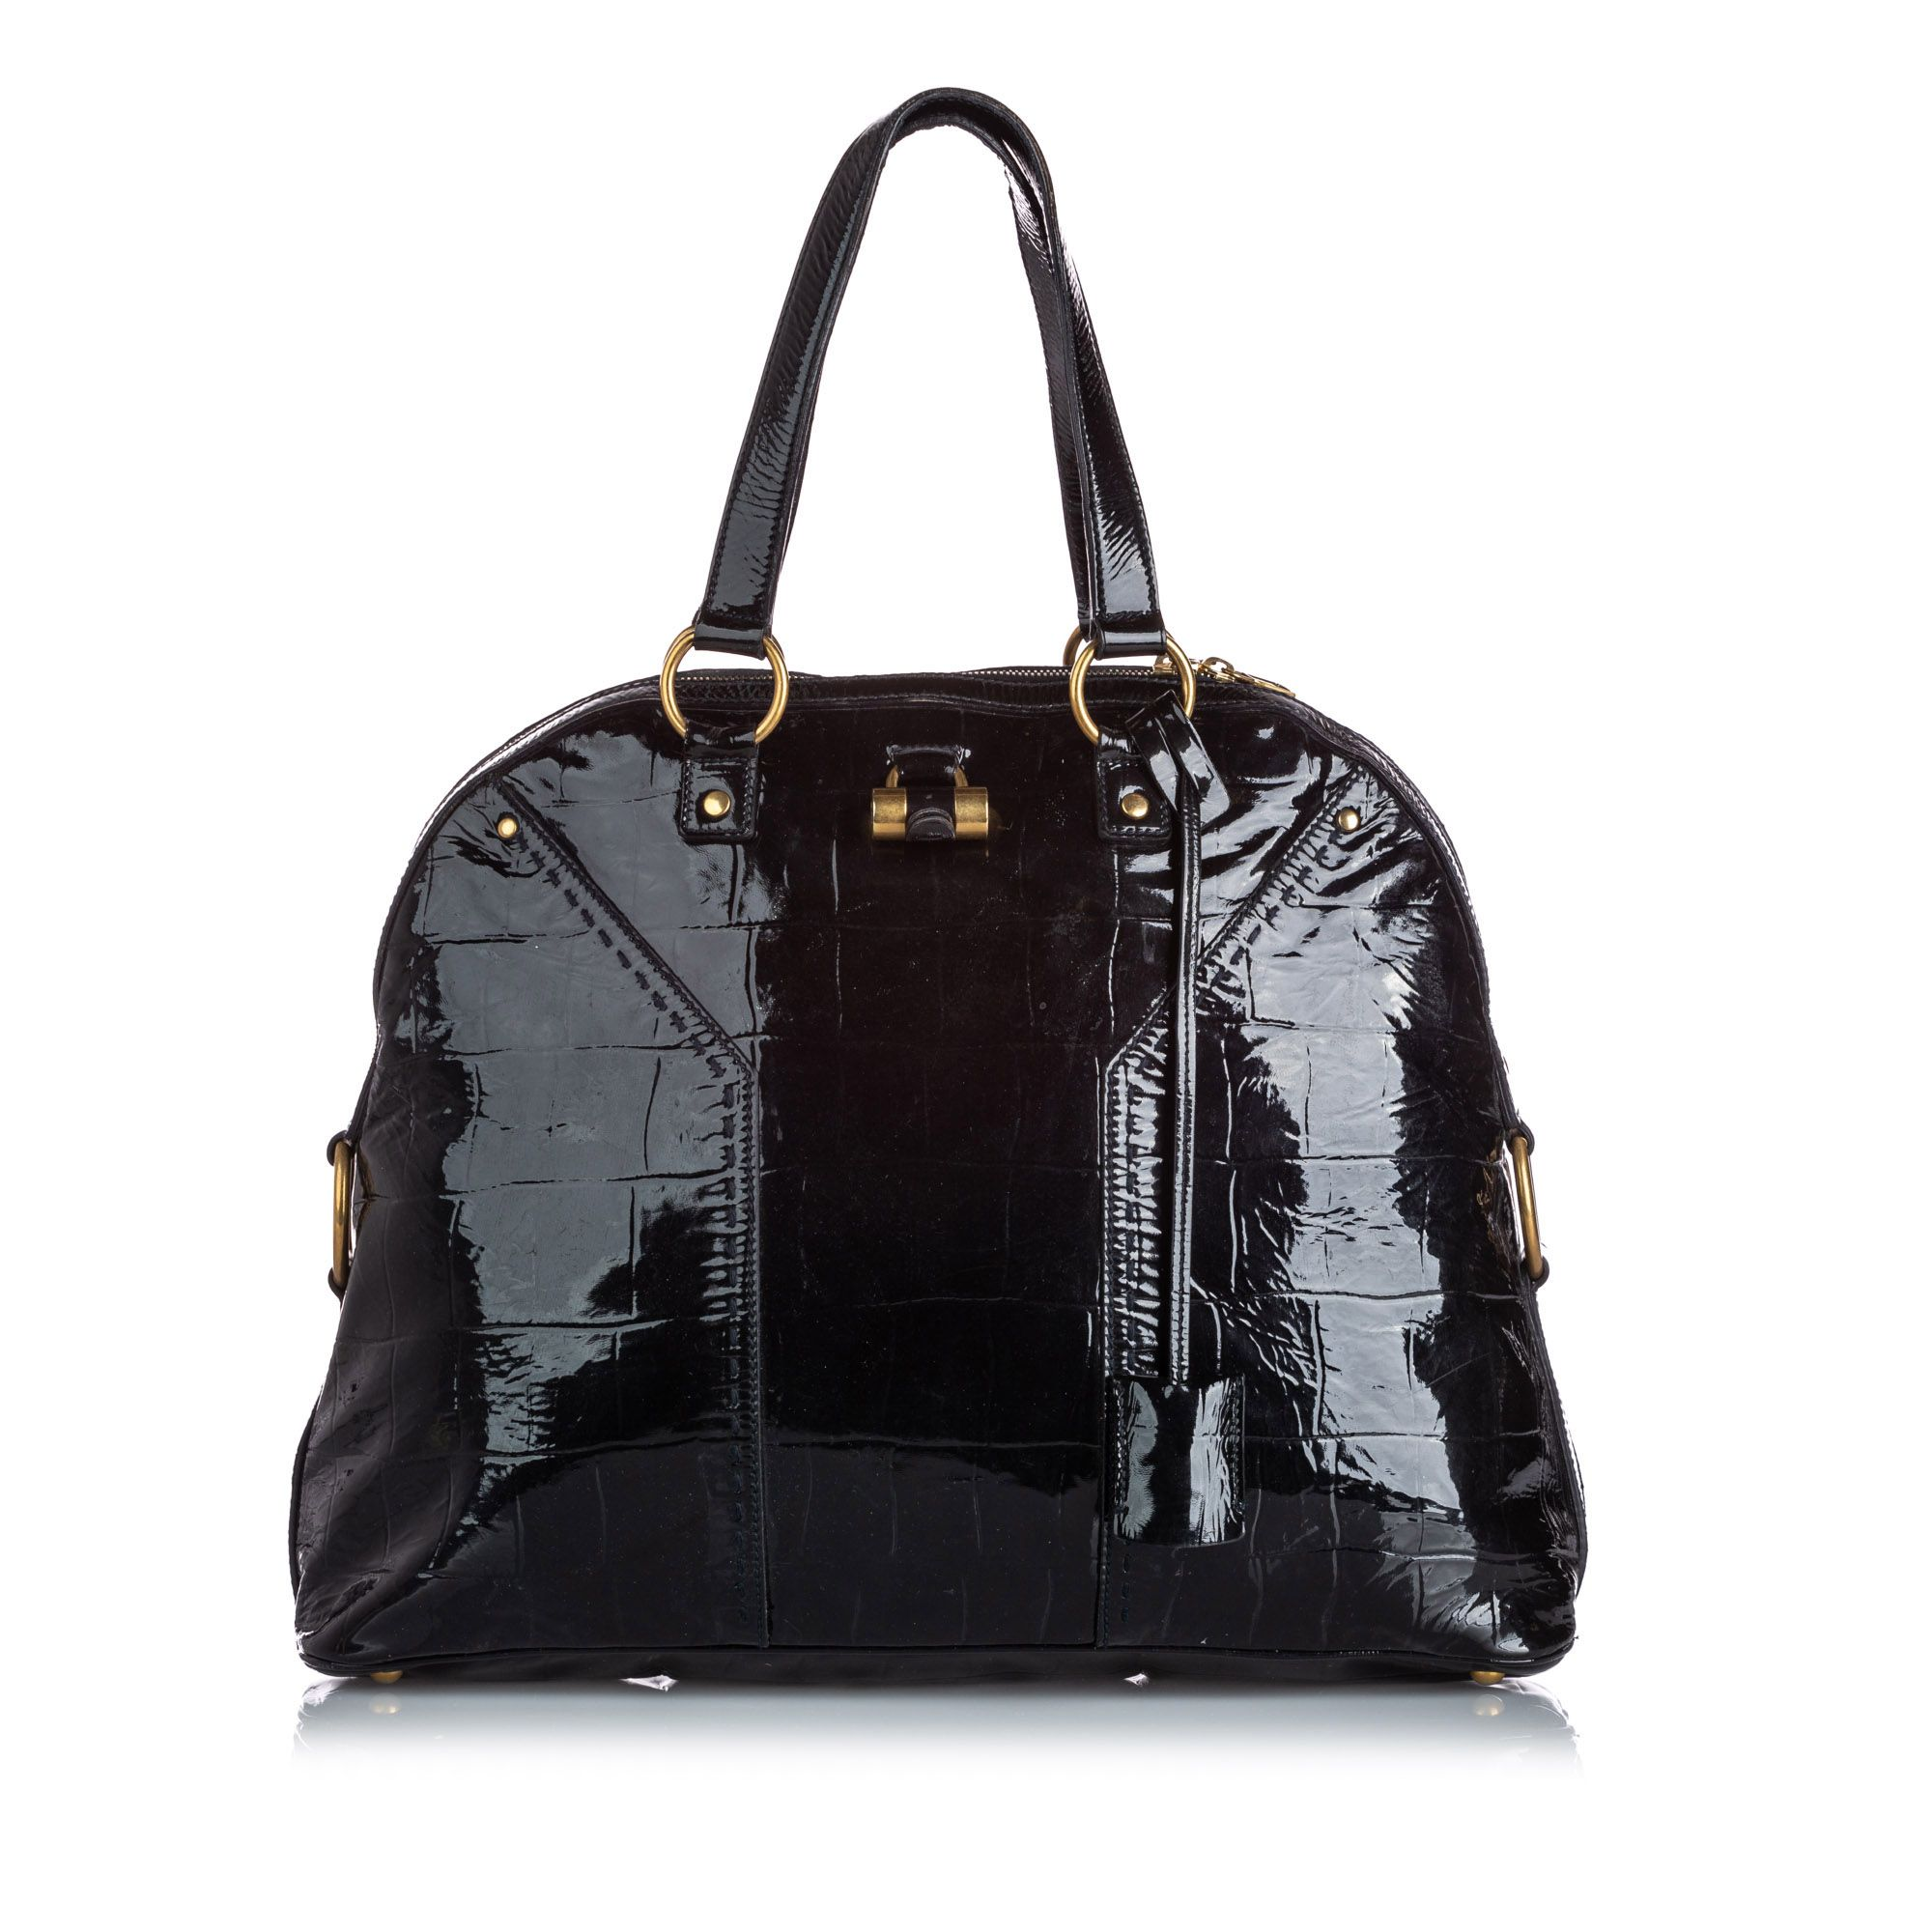 Vintage YSL Patent Leather Muse Handbag Black